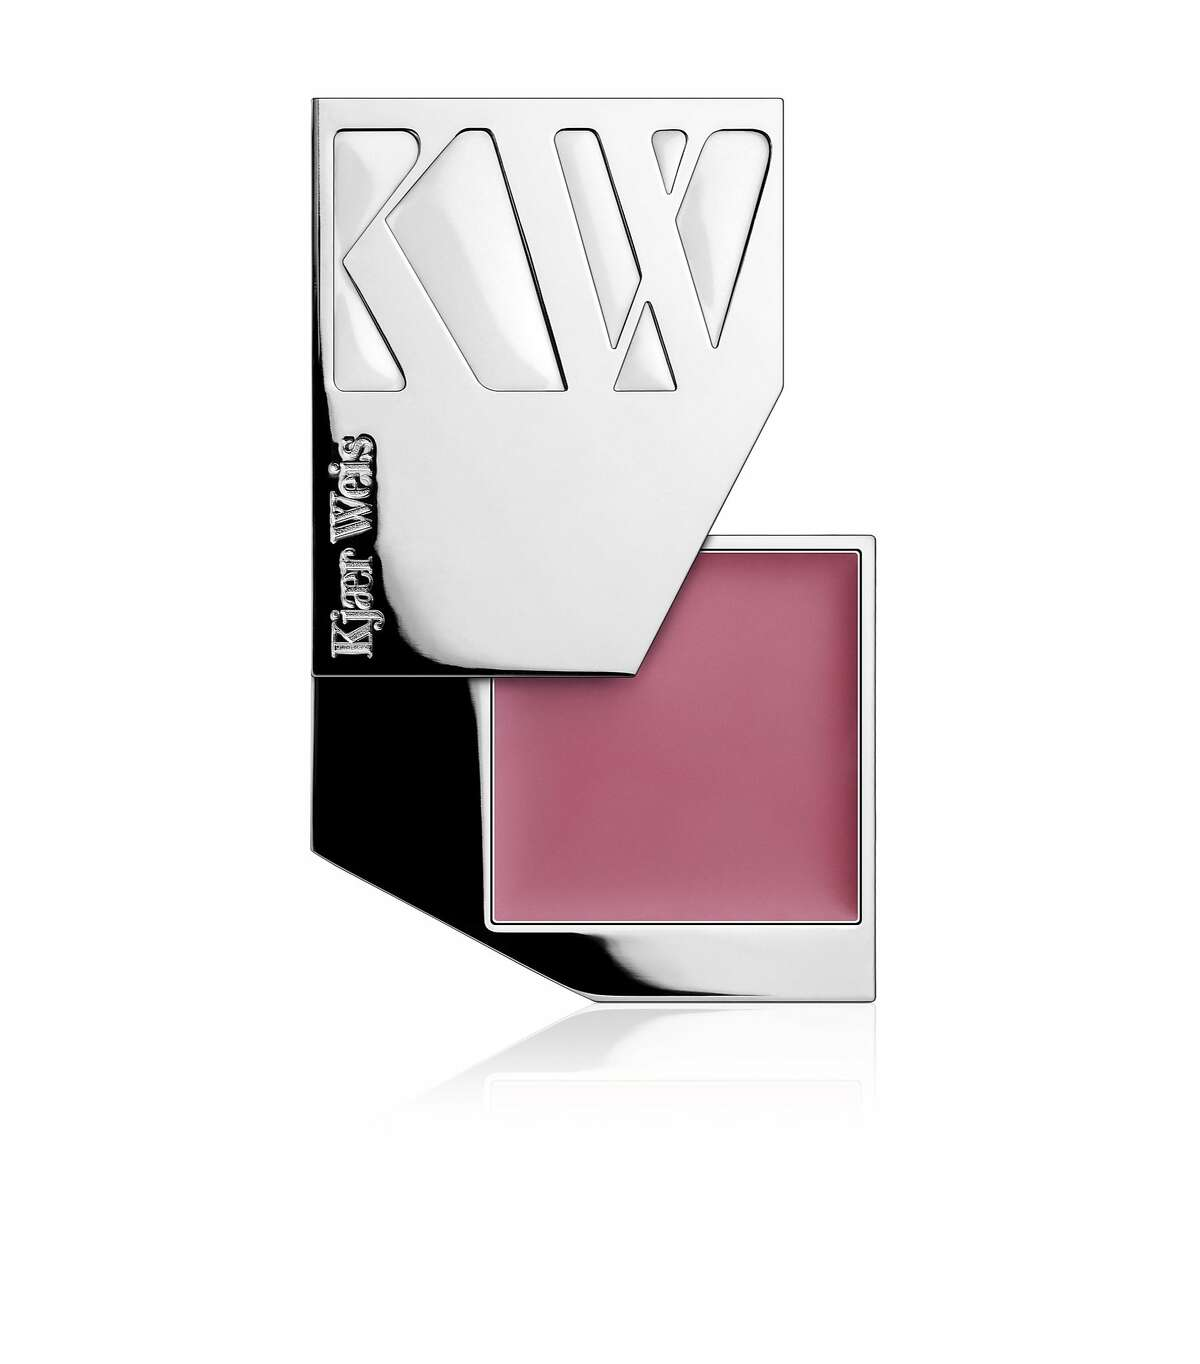 Avoid using powder blush during the winter months and opt for a hydrating cream blush like the Kjaer Weis Cream Blush in Lovely. This non-toxic, organic blush is a soft petal pink hue that gives all skin tones a natural-looking flush. $56, Credo Beauty, 2136 Fillmore, S.F. and http://kjaerweis.com.